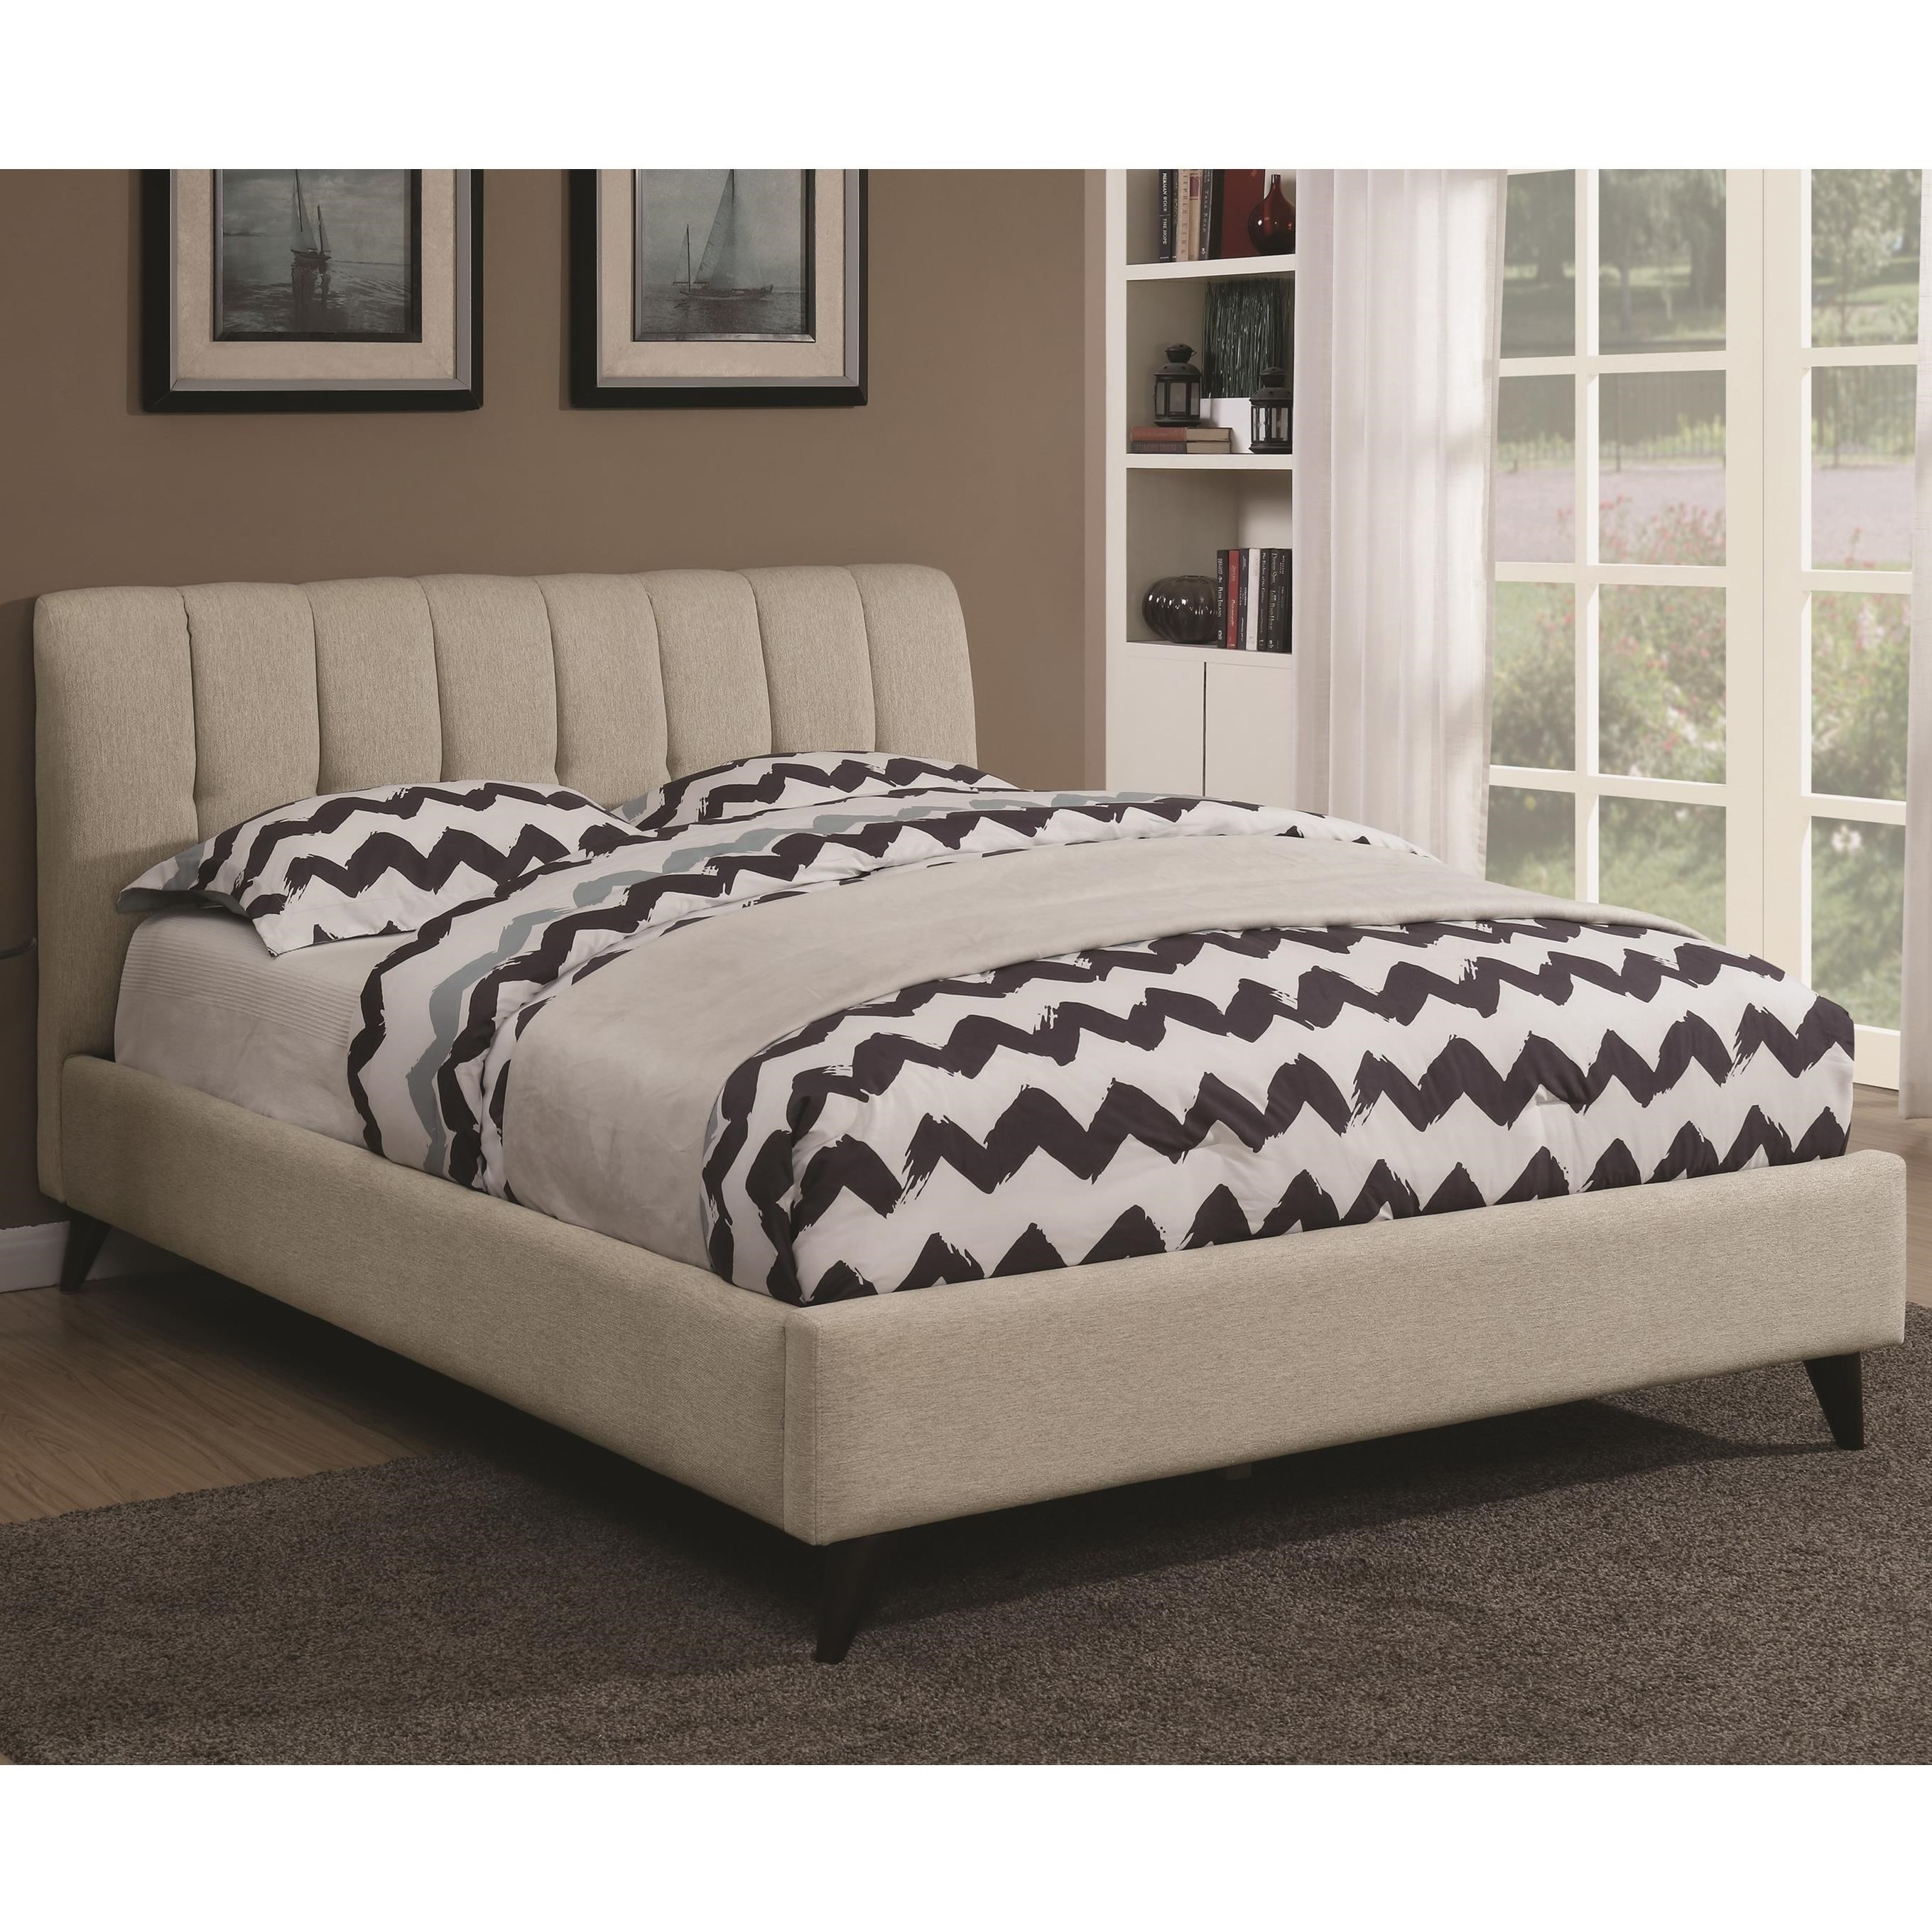 Portola Mid Century Modern Upholstered King Bed By Coaster